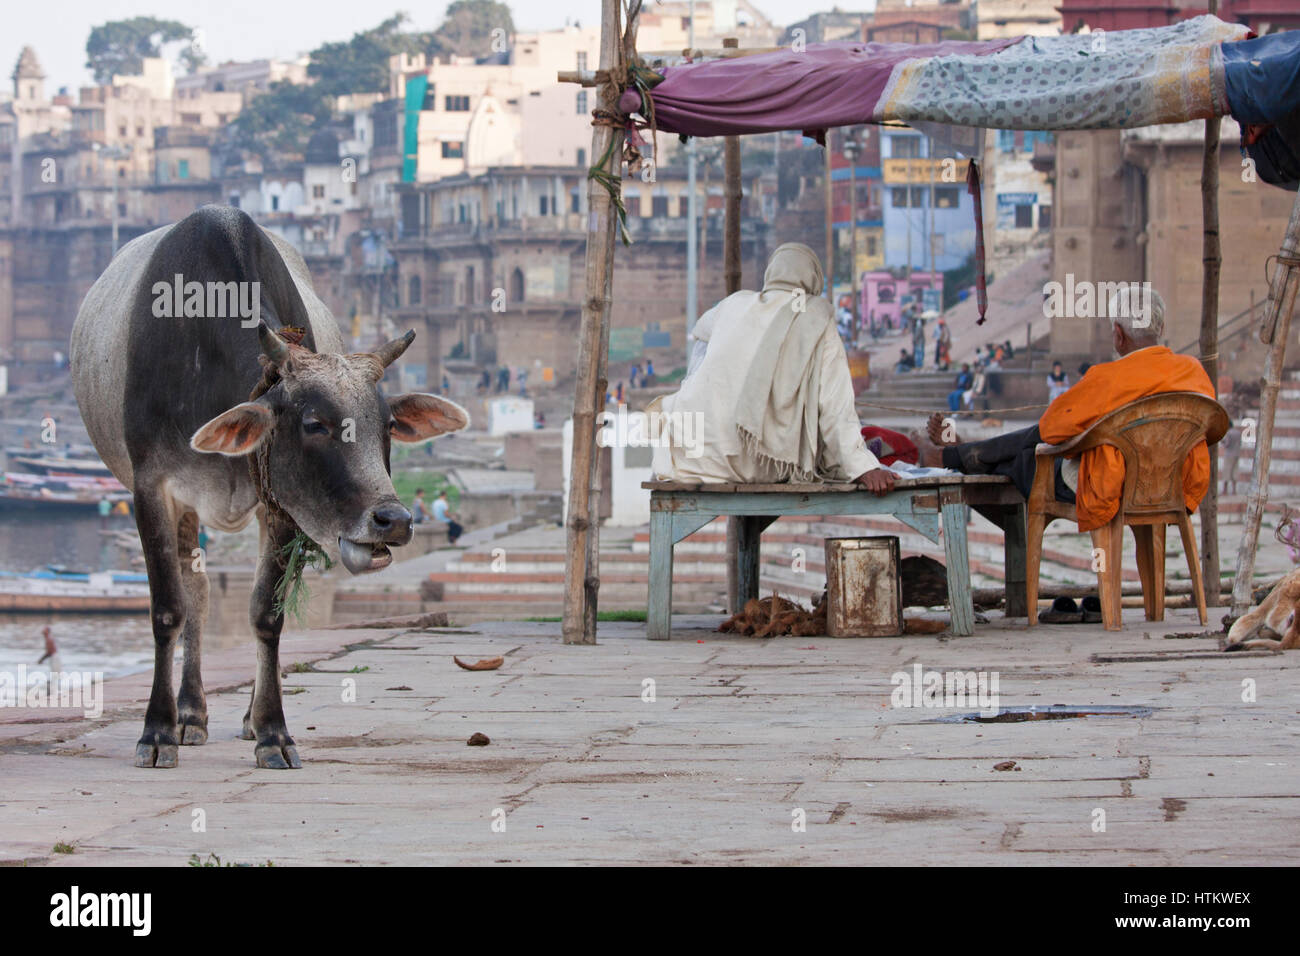 A cow wandering freely on the banks of the river Ganges at Varanasi, India. Cattle are revered in Hinduism and symbolize - Stock Image